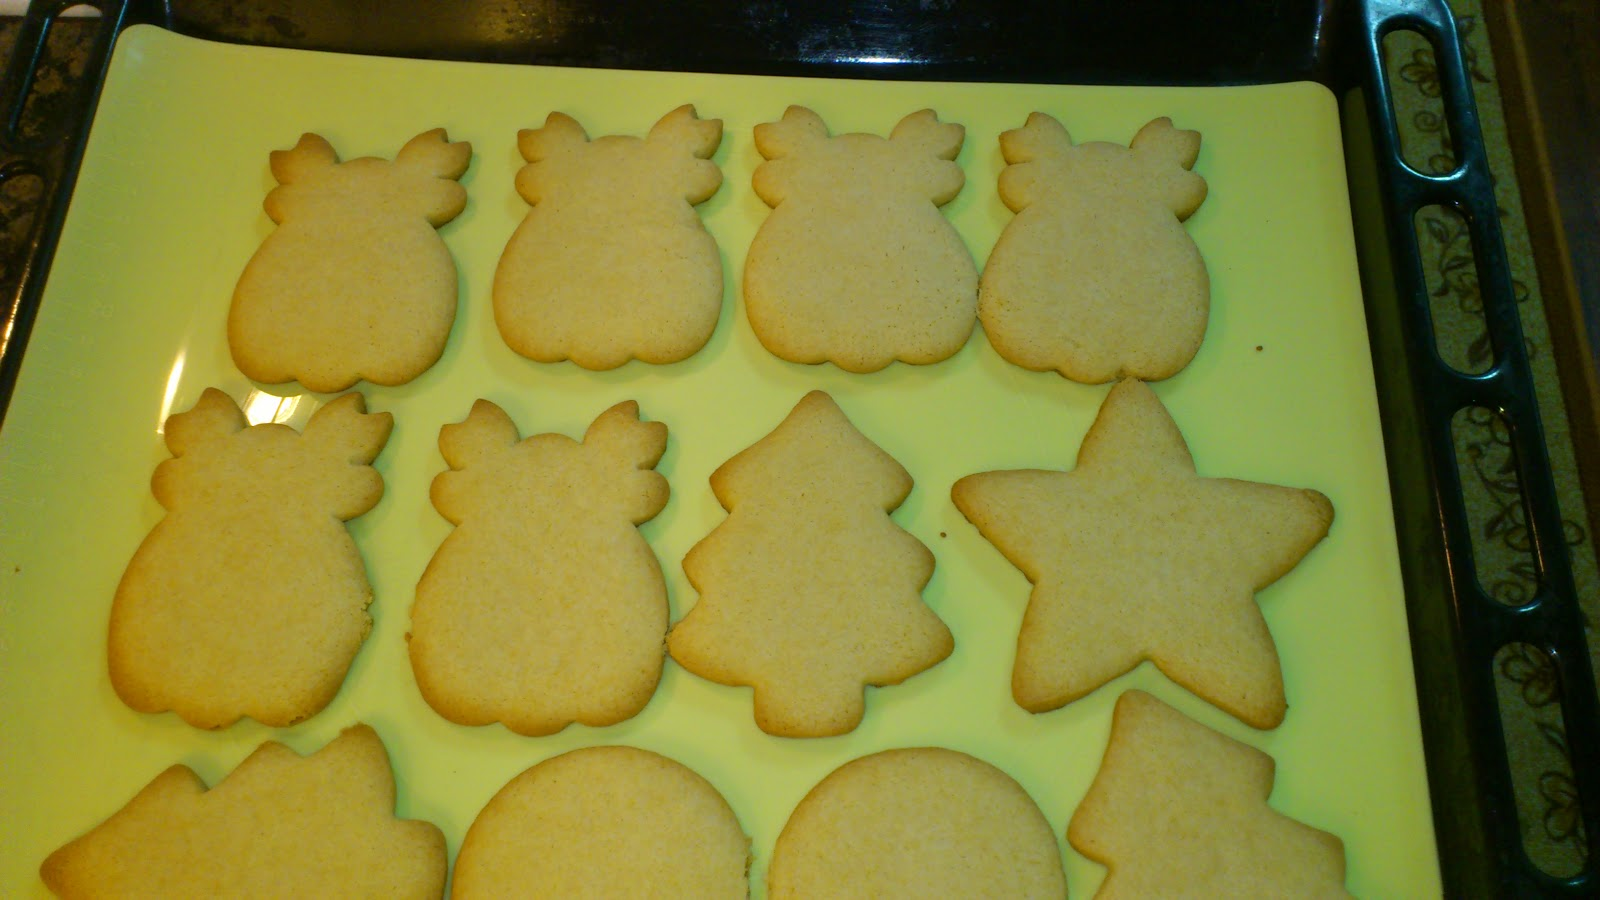 Galletas Thermomix Para Decorar Dulce Gordito Masa De Galletas Para Decorar Con